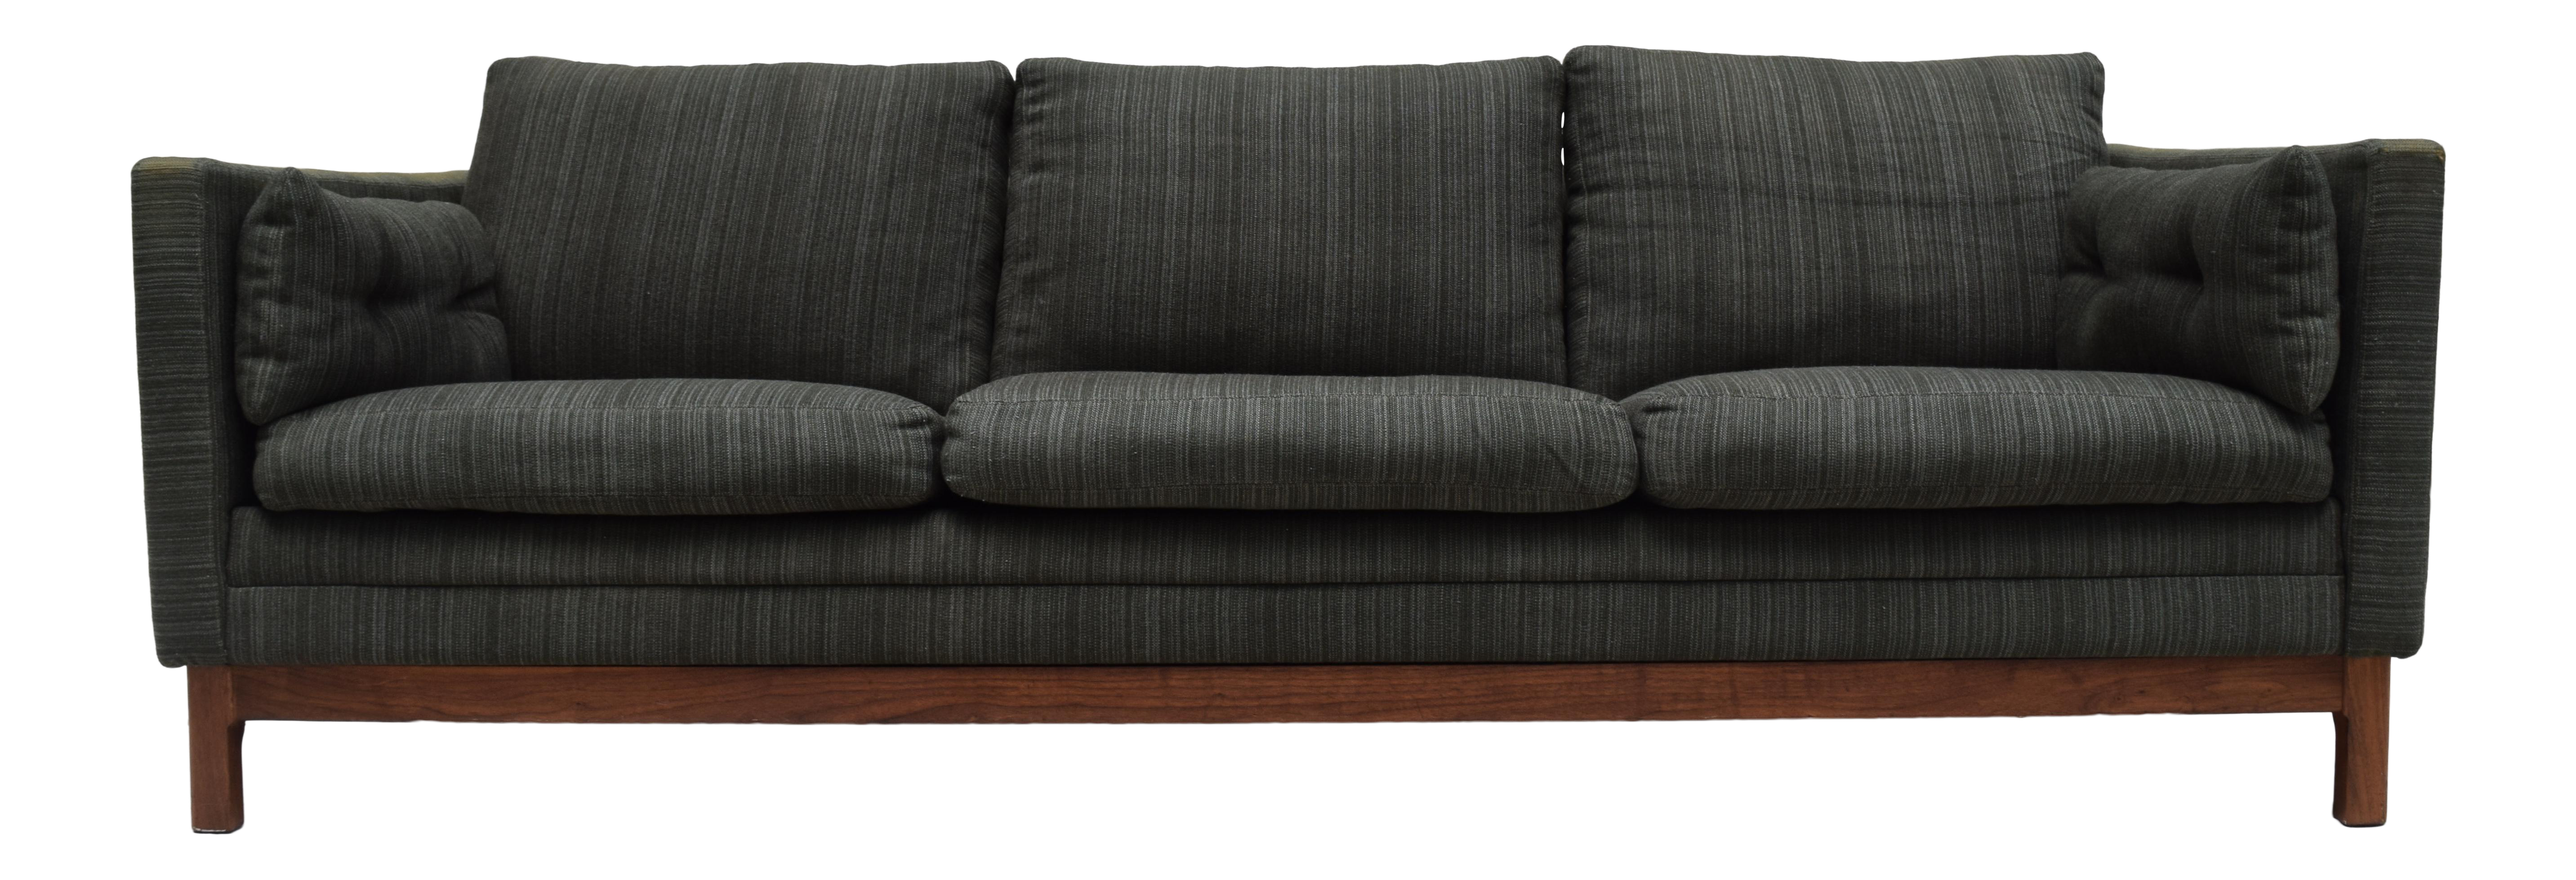 Folke ohlsson for dux pasadena sofa chairish